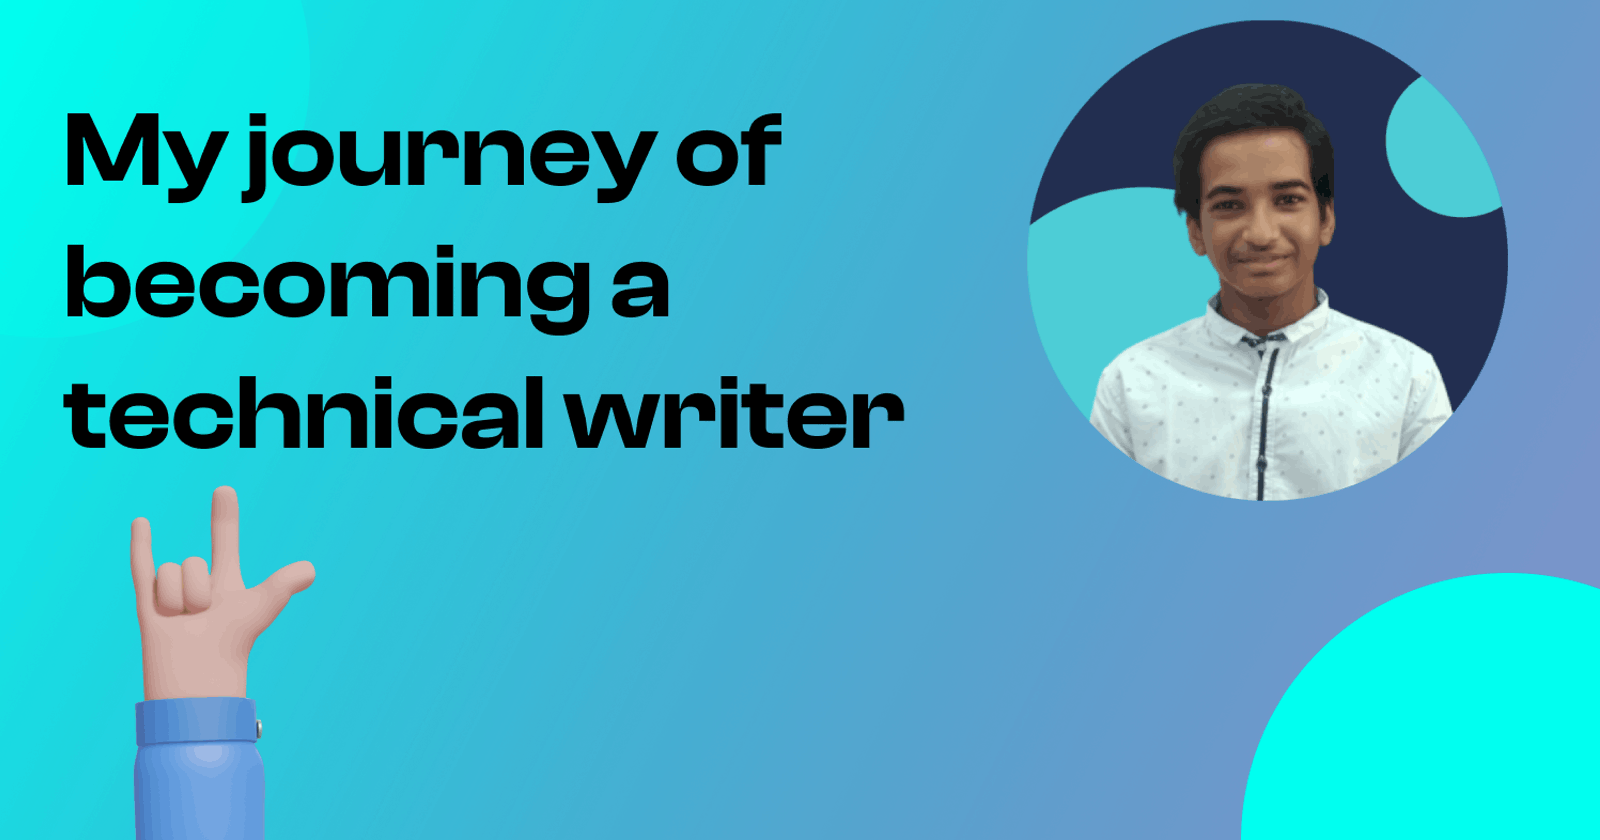 My journey of becoming a technical writer